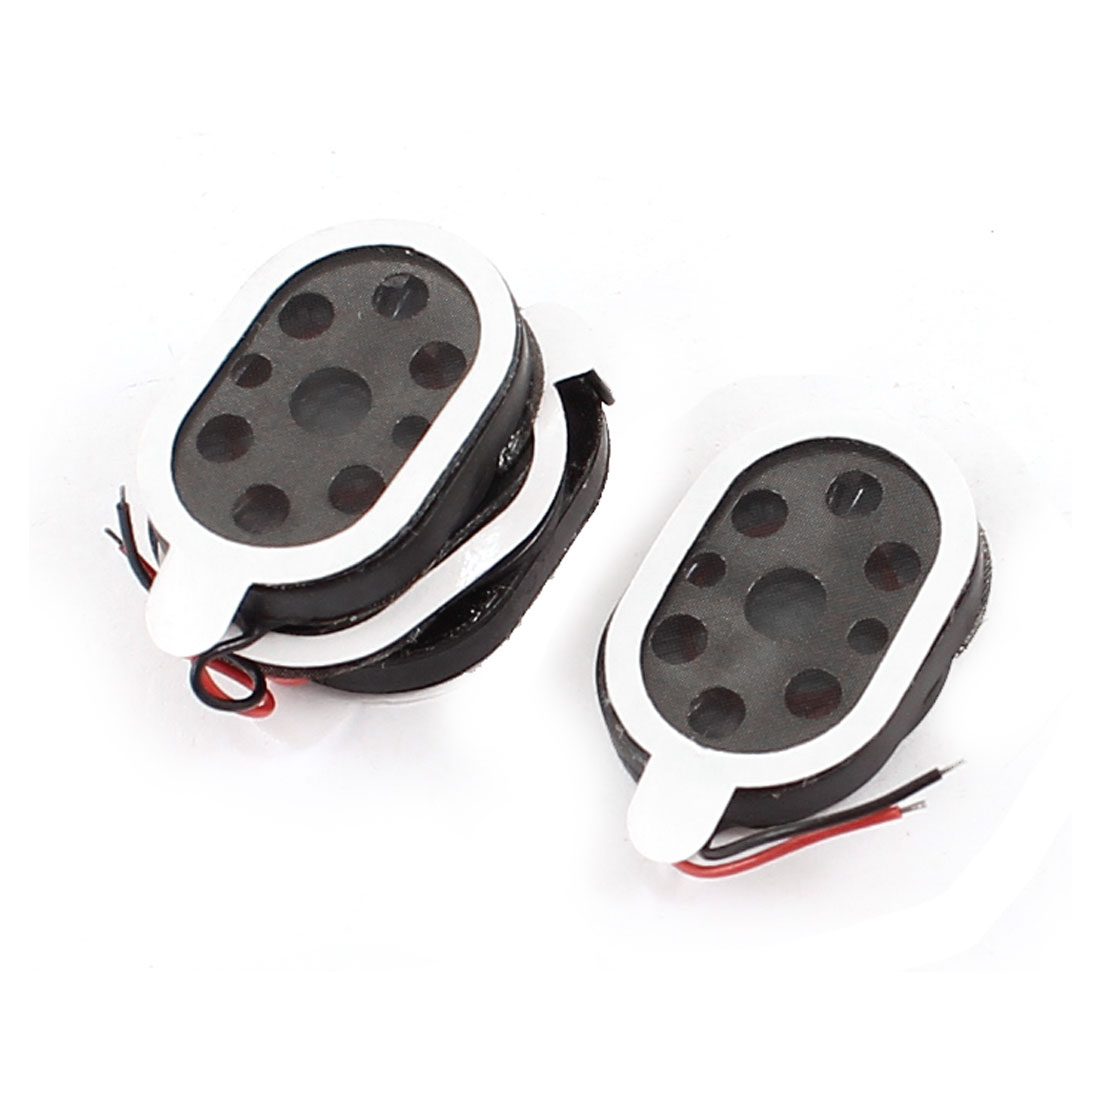 4Pcs 1Watt 8 Ohm 2-Wired Oval GPS Tablet Amplifier Speaker Loudspeaker Horn 20mm x 14mm